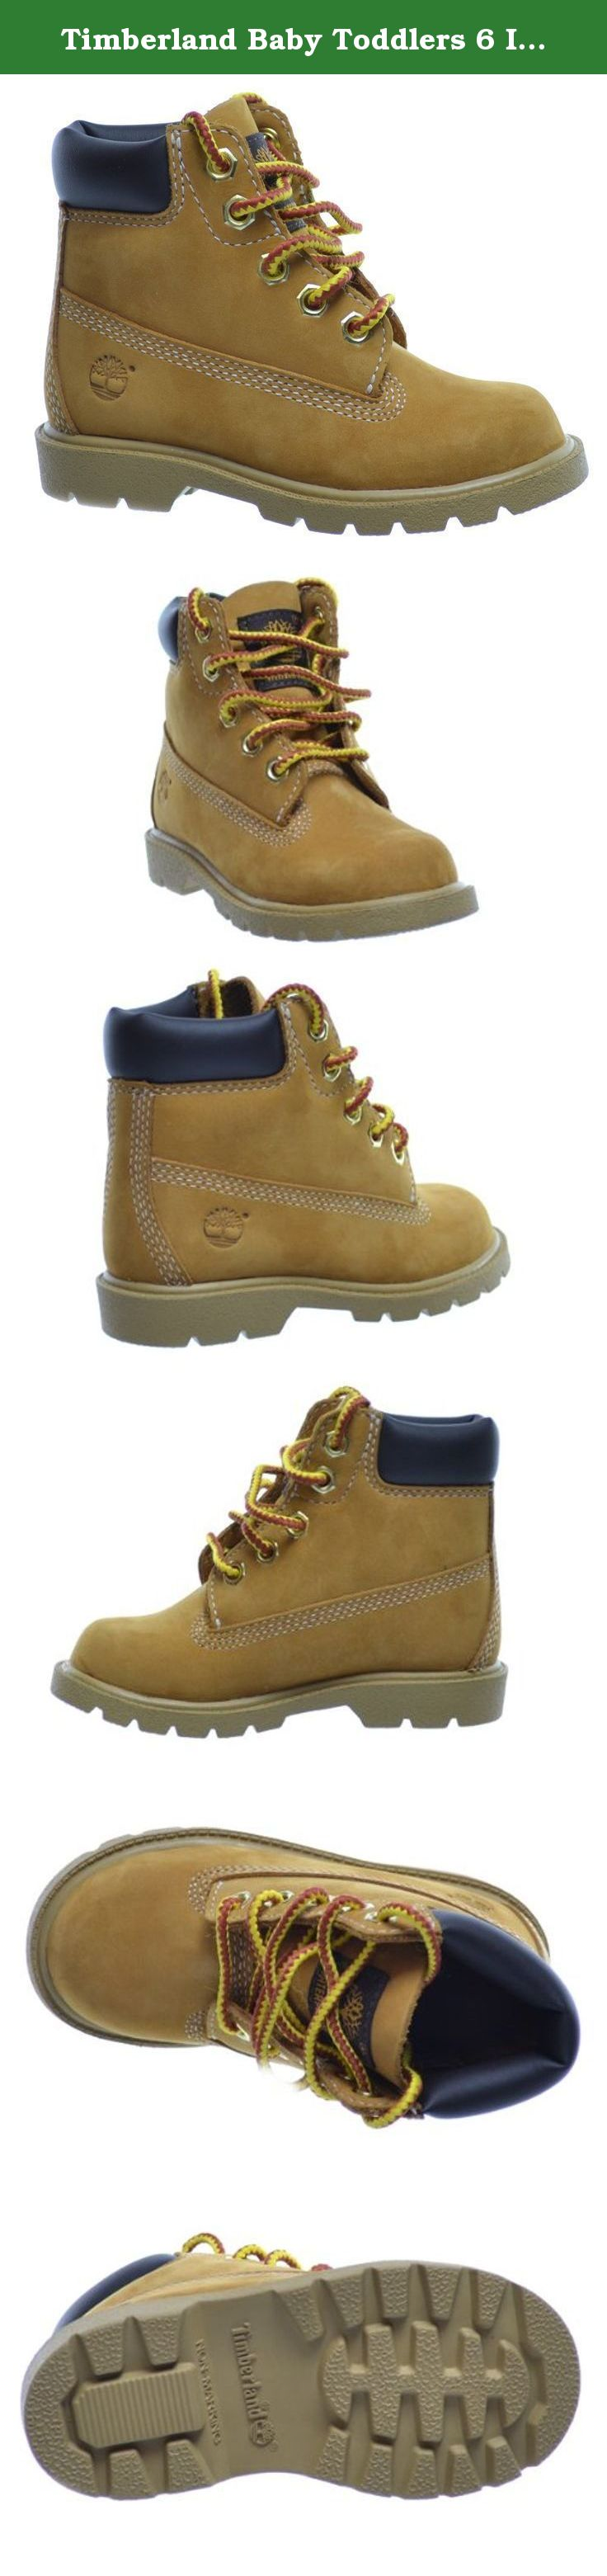 Baby Toddlers 6 Inch Boots Wheat 10860